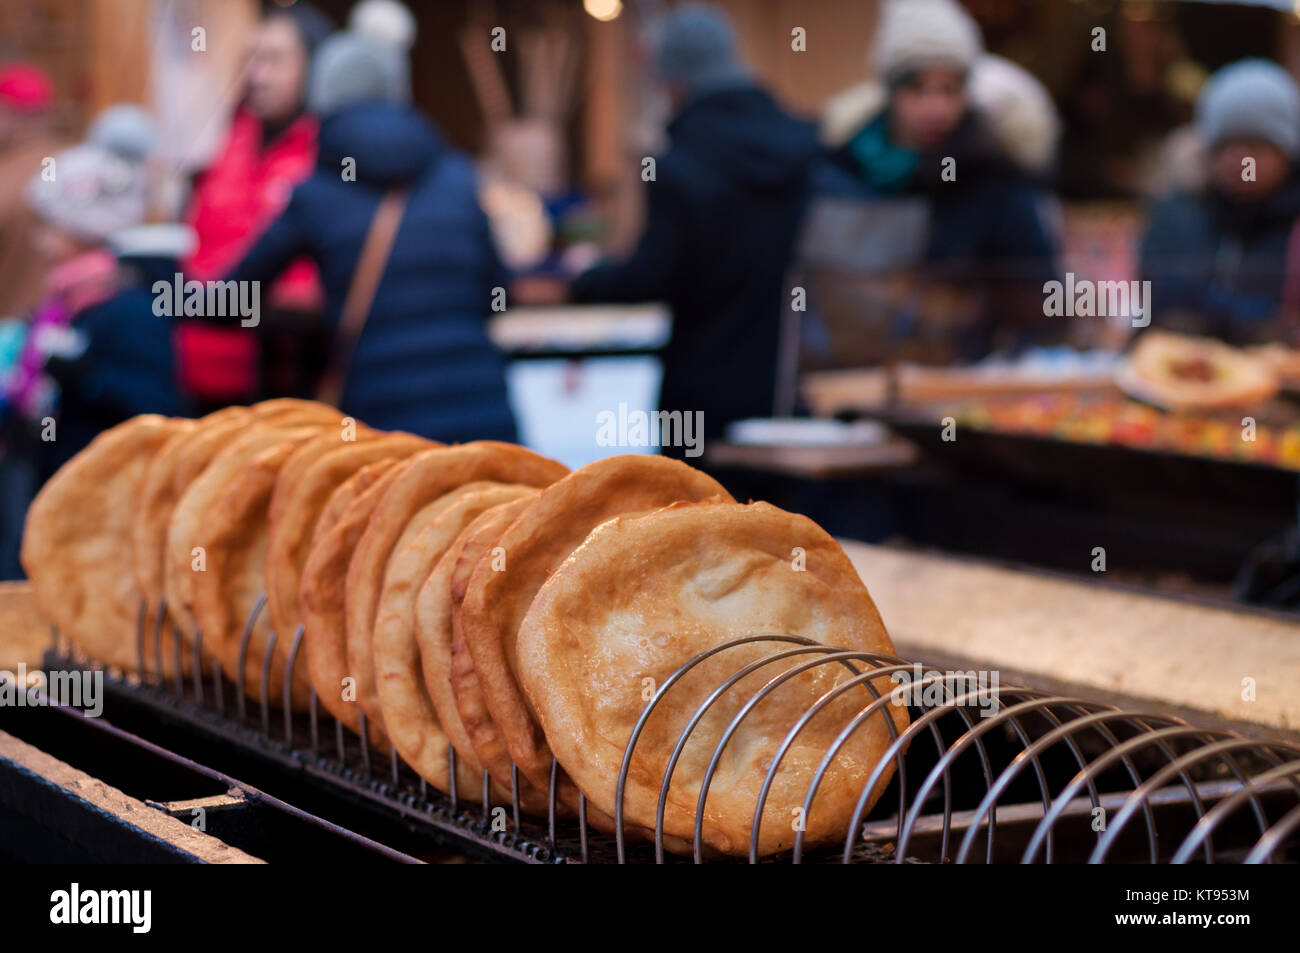 Weihnachtsmarkt Langos.Langos For Sale In The Christmas Market Stock Photo 169846648 Alamy